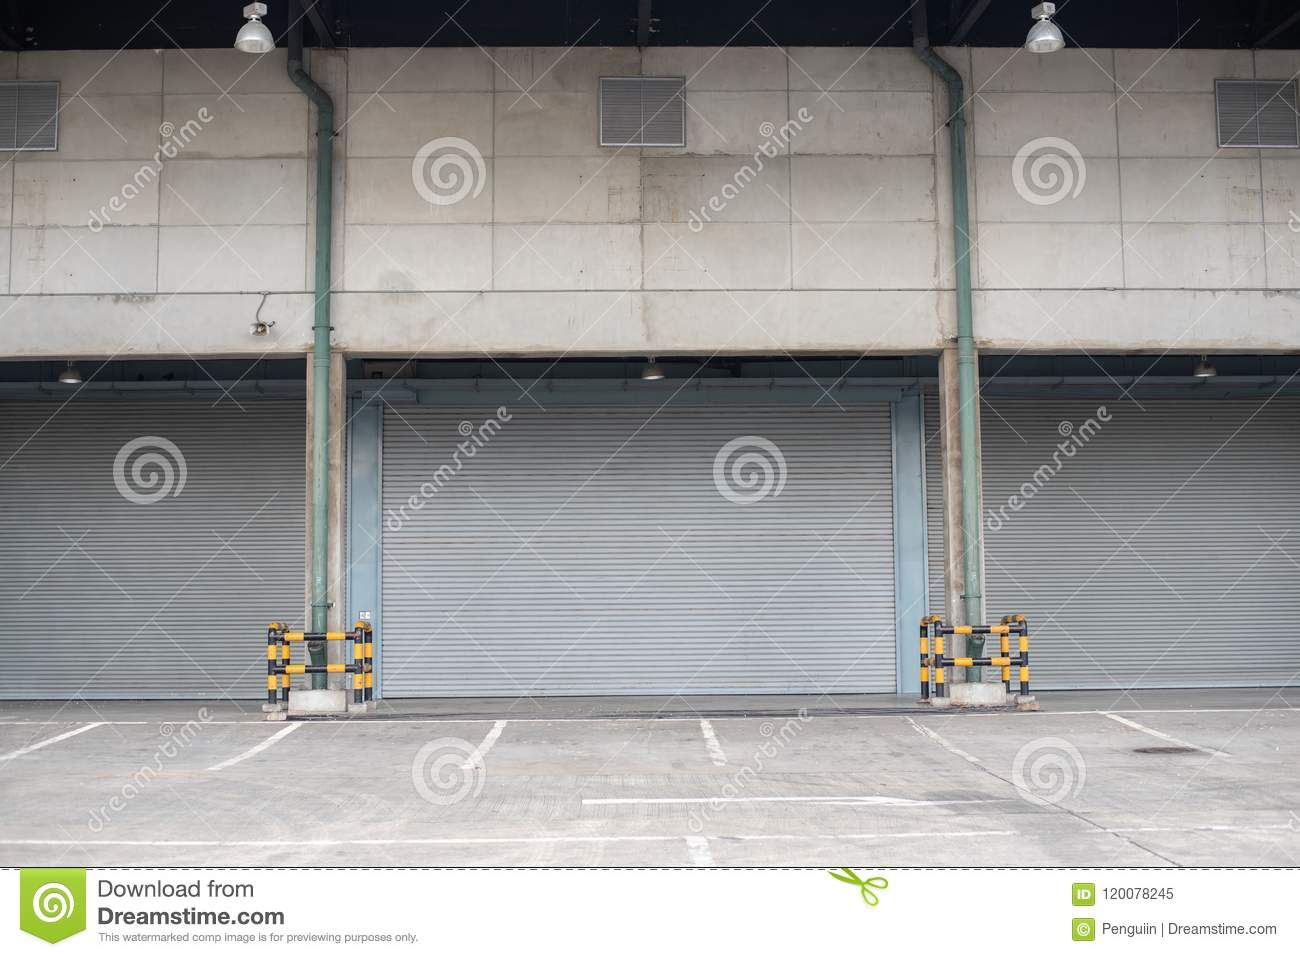 Windows protected with roller shutters, background texture